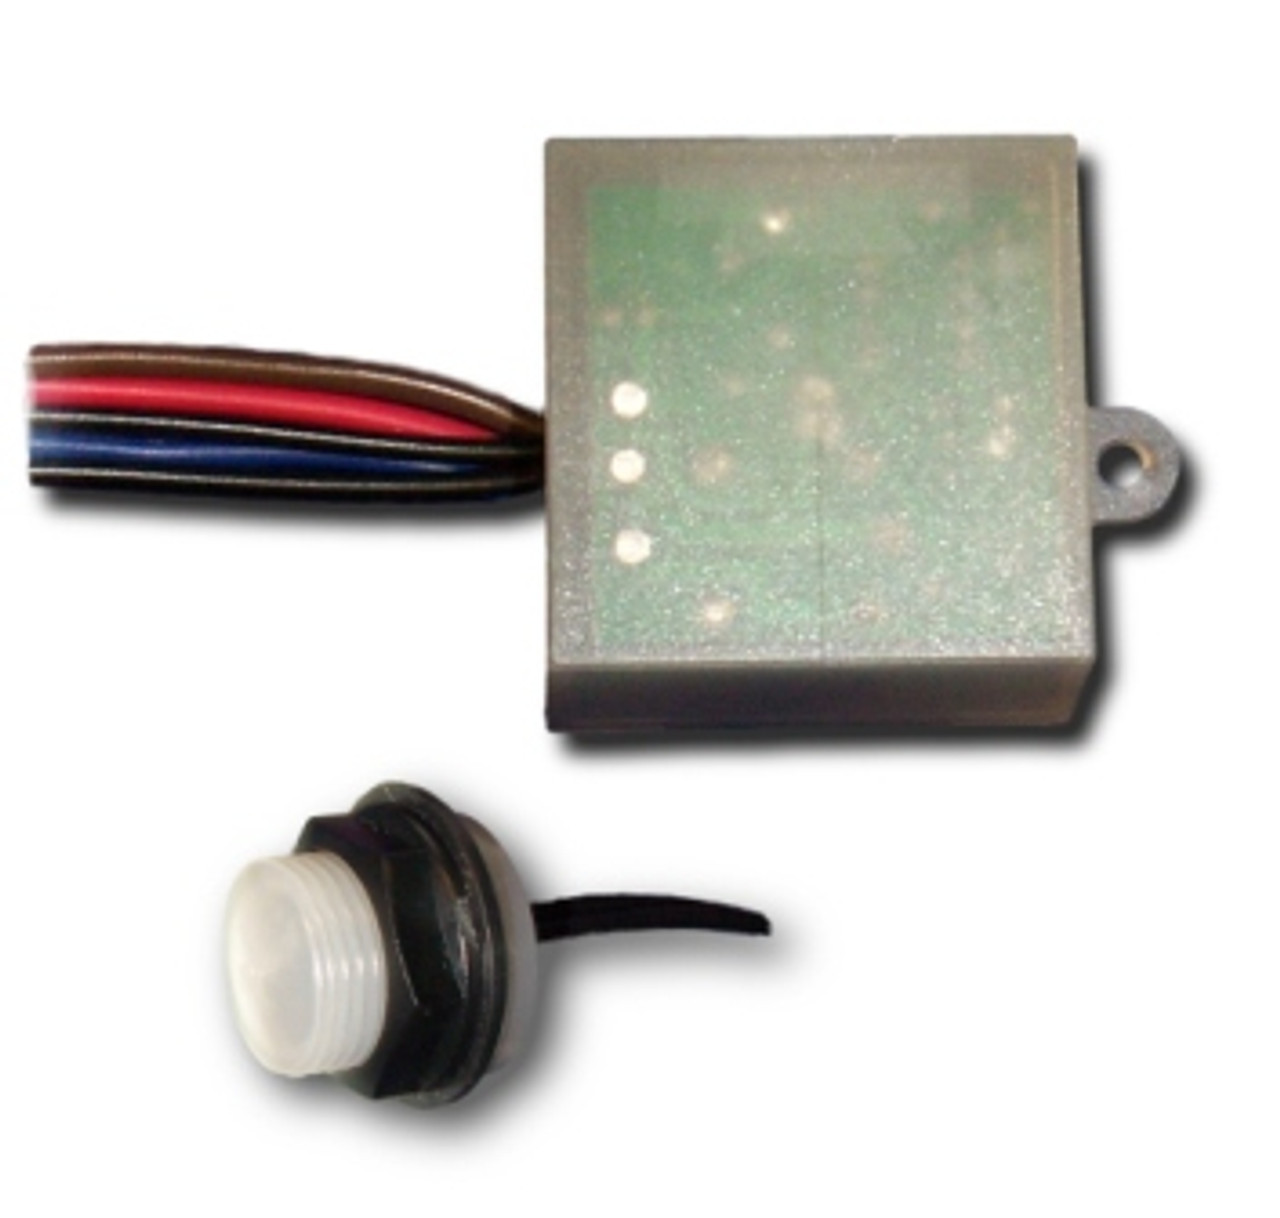 12V remote sensor photocell switch for LED lights 12V DC